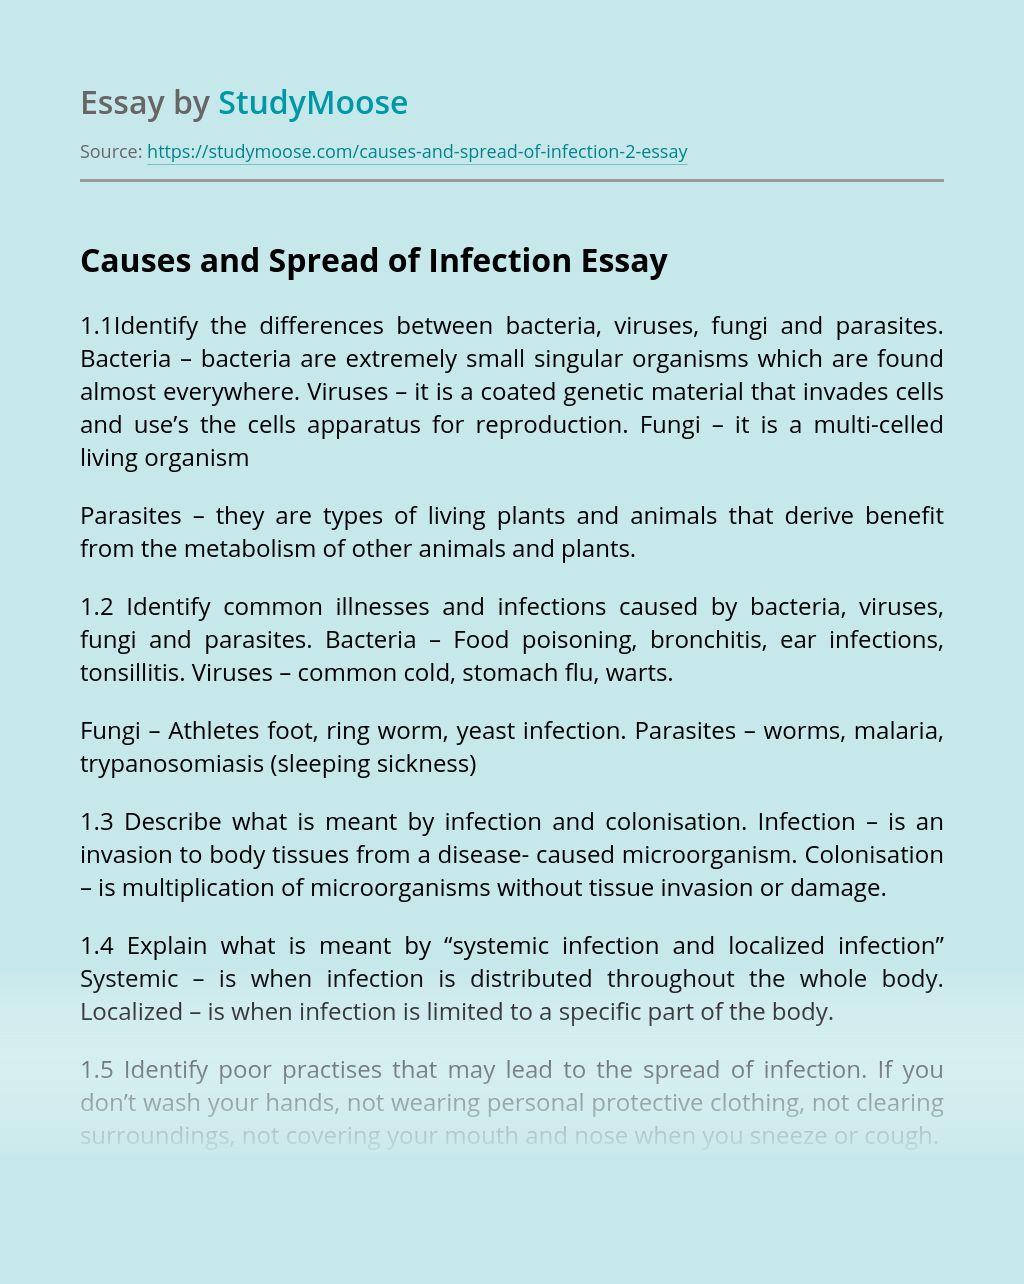 Causes and Spread of Infection